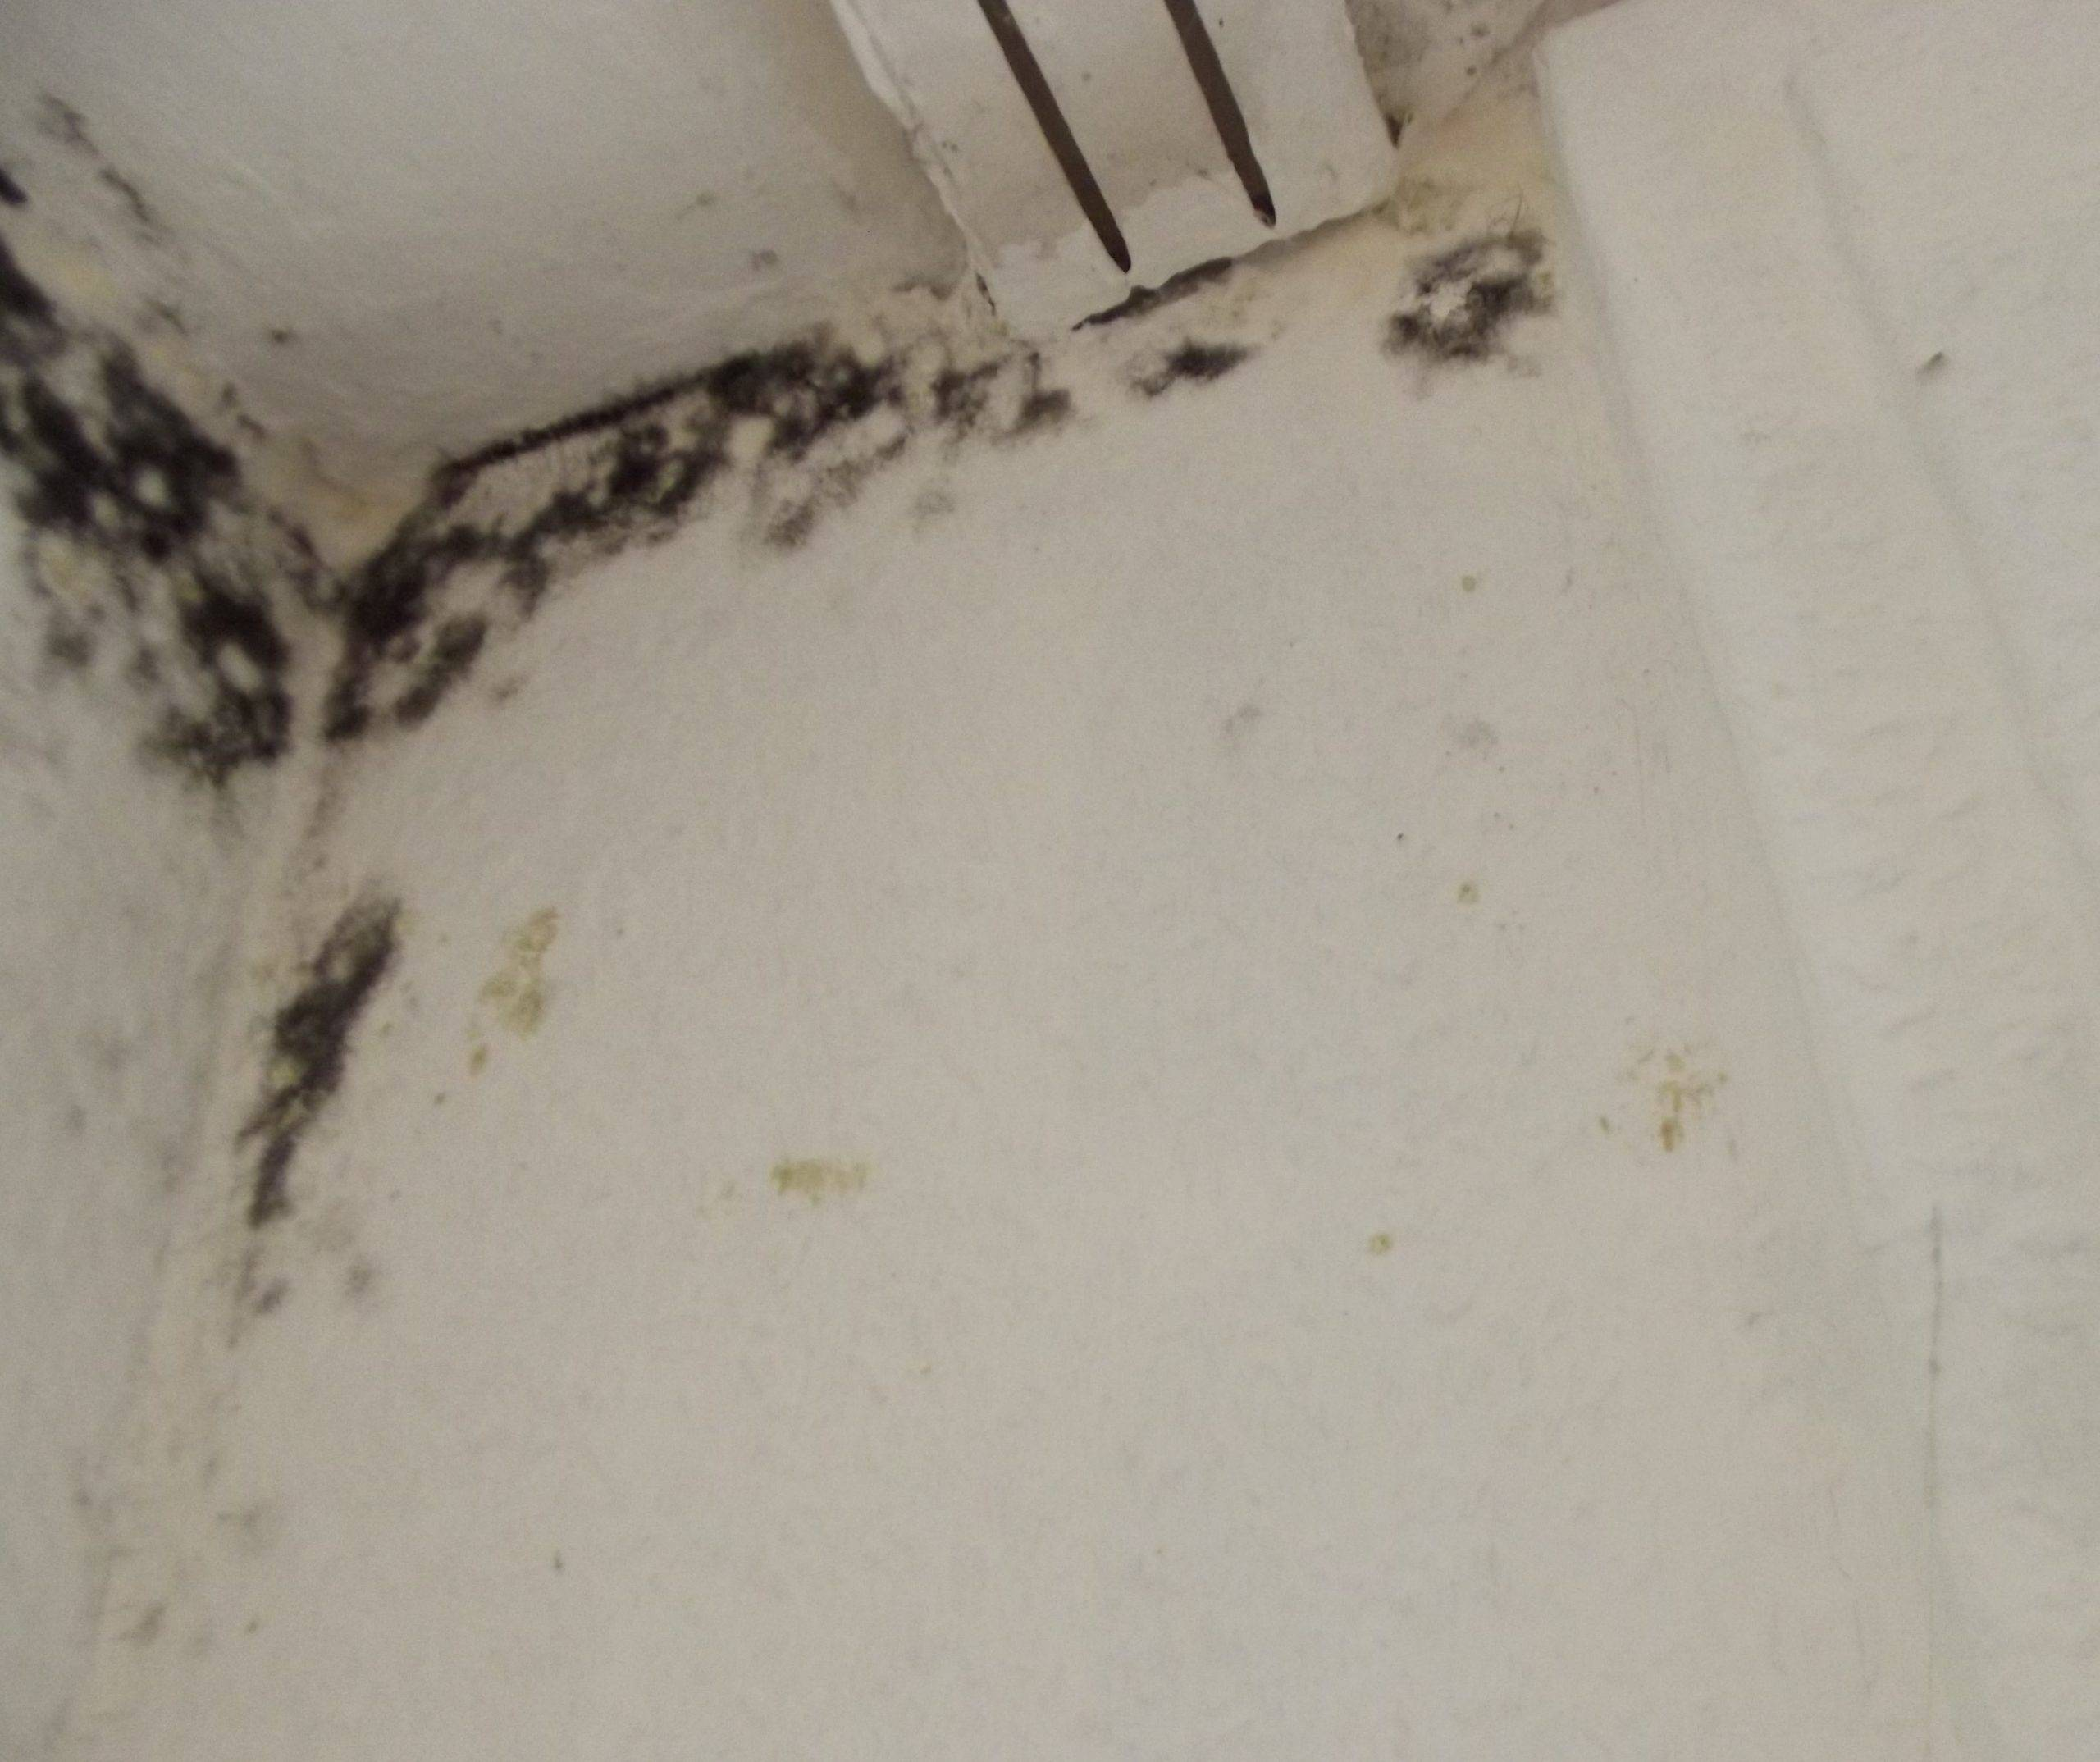 mold Chaetomium abatement